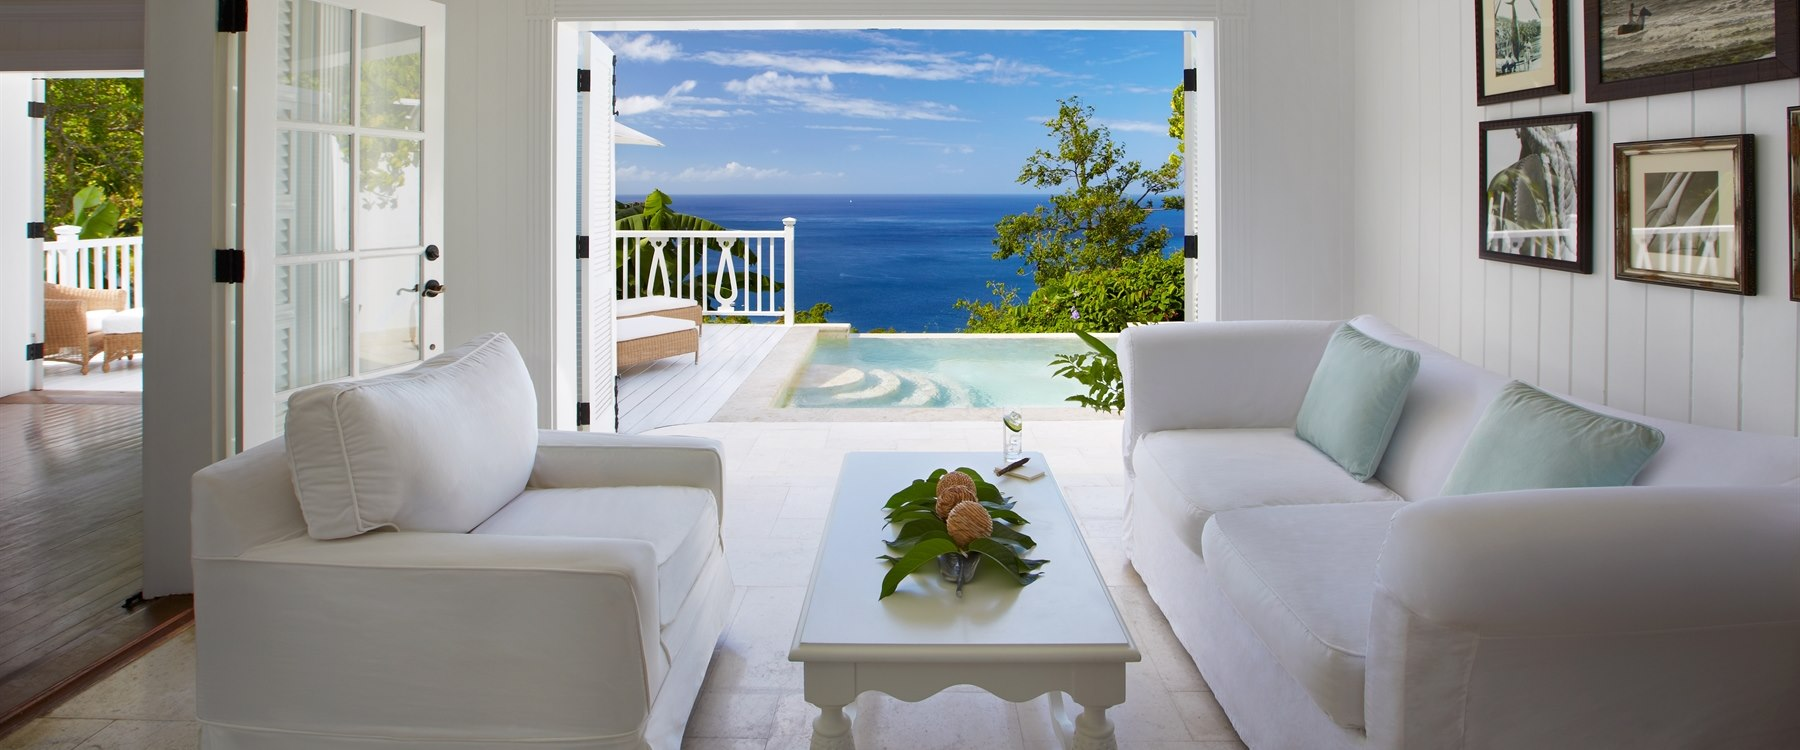 Living room area overlooking the ocean in Luxury Villa at Sugar Beach, A Viceroy Resort